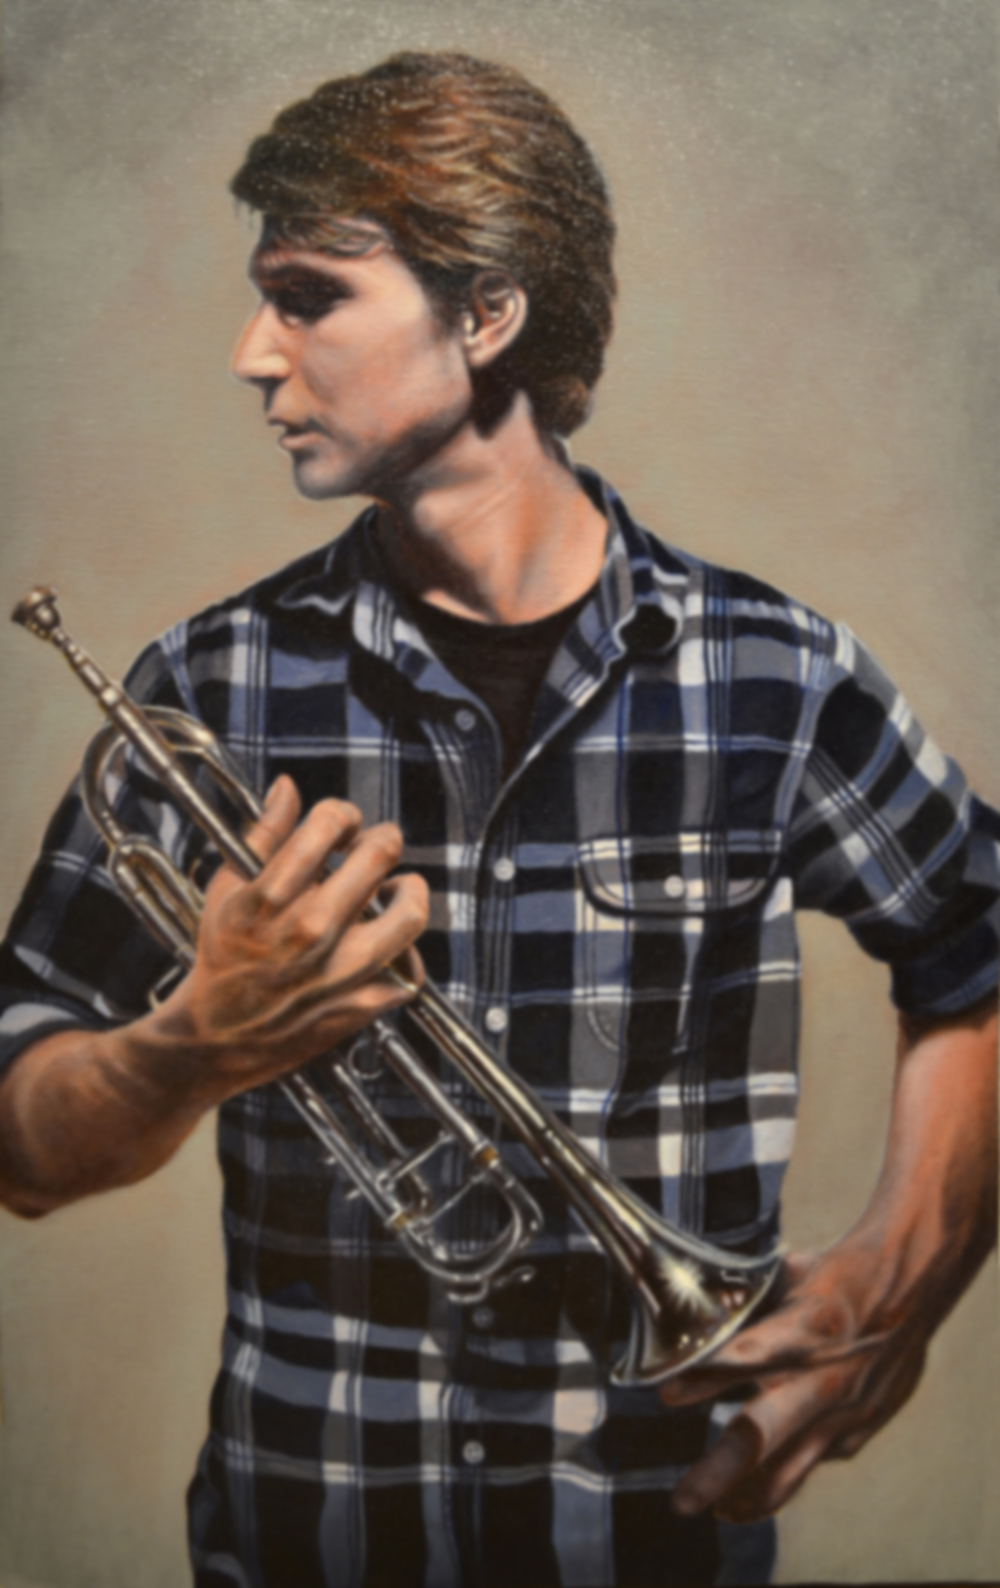 Taps   oil on canvas, h 22 w 13 inches  SOLD